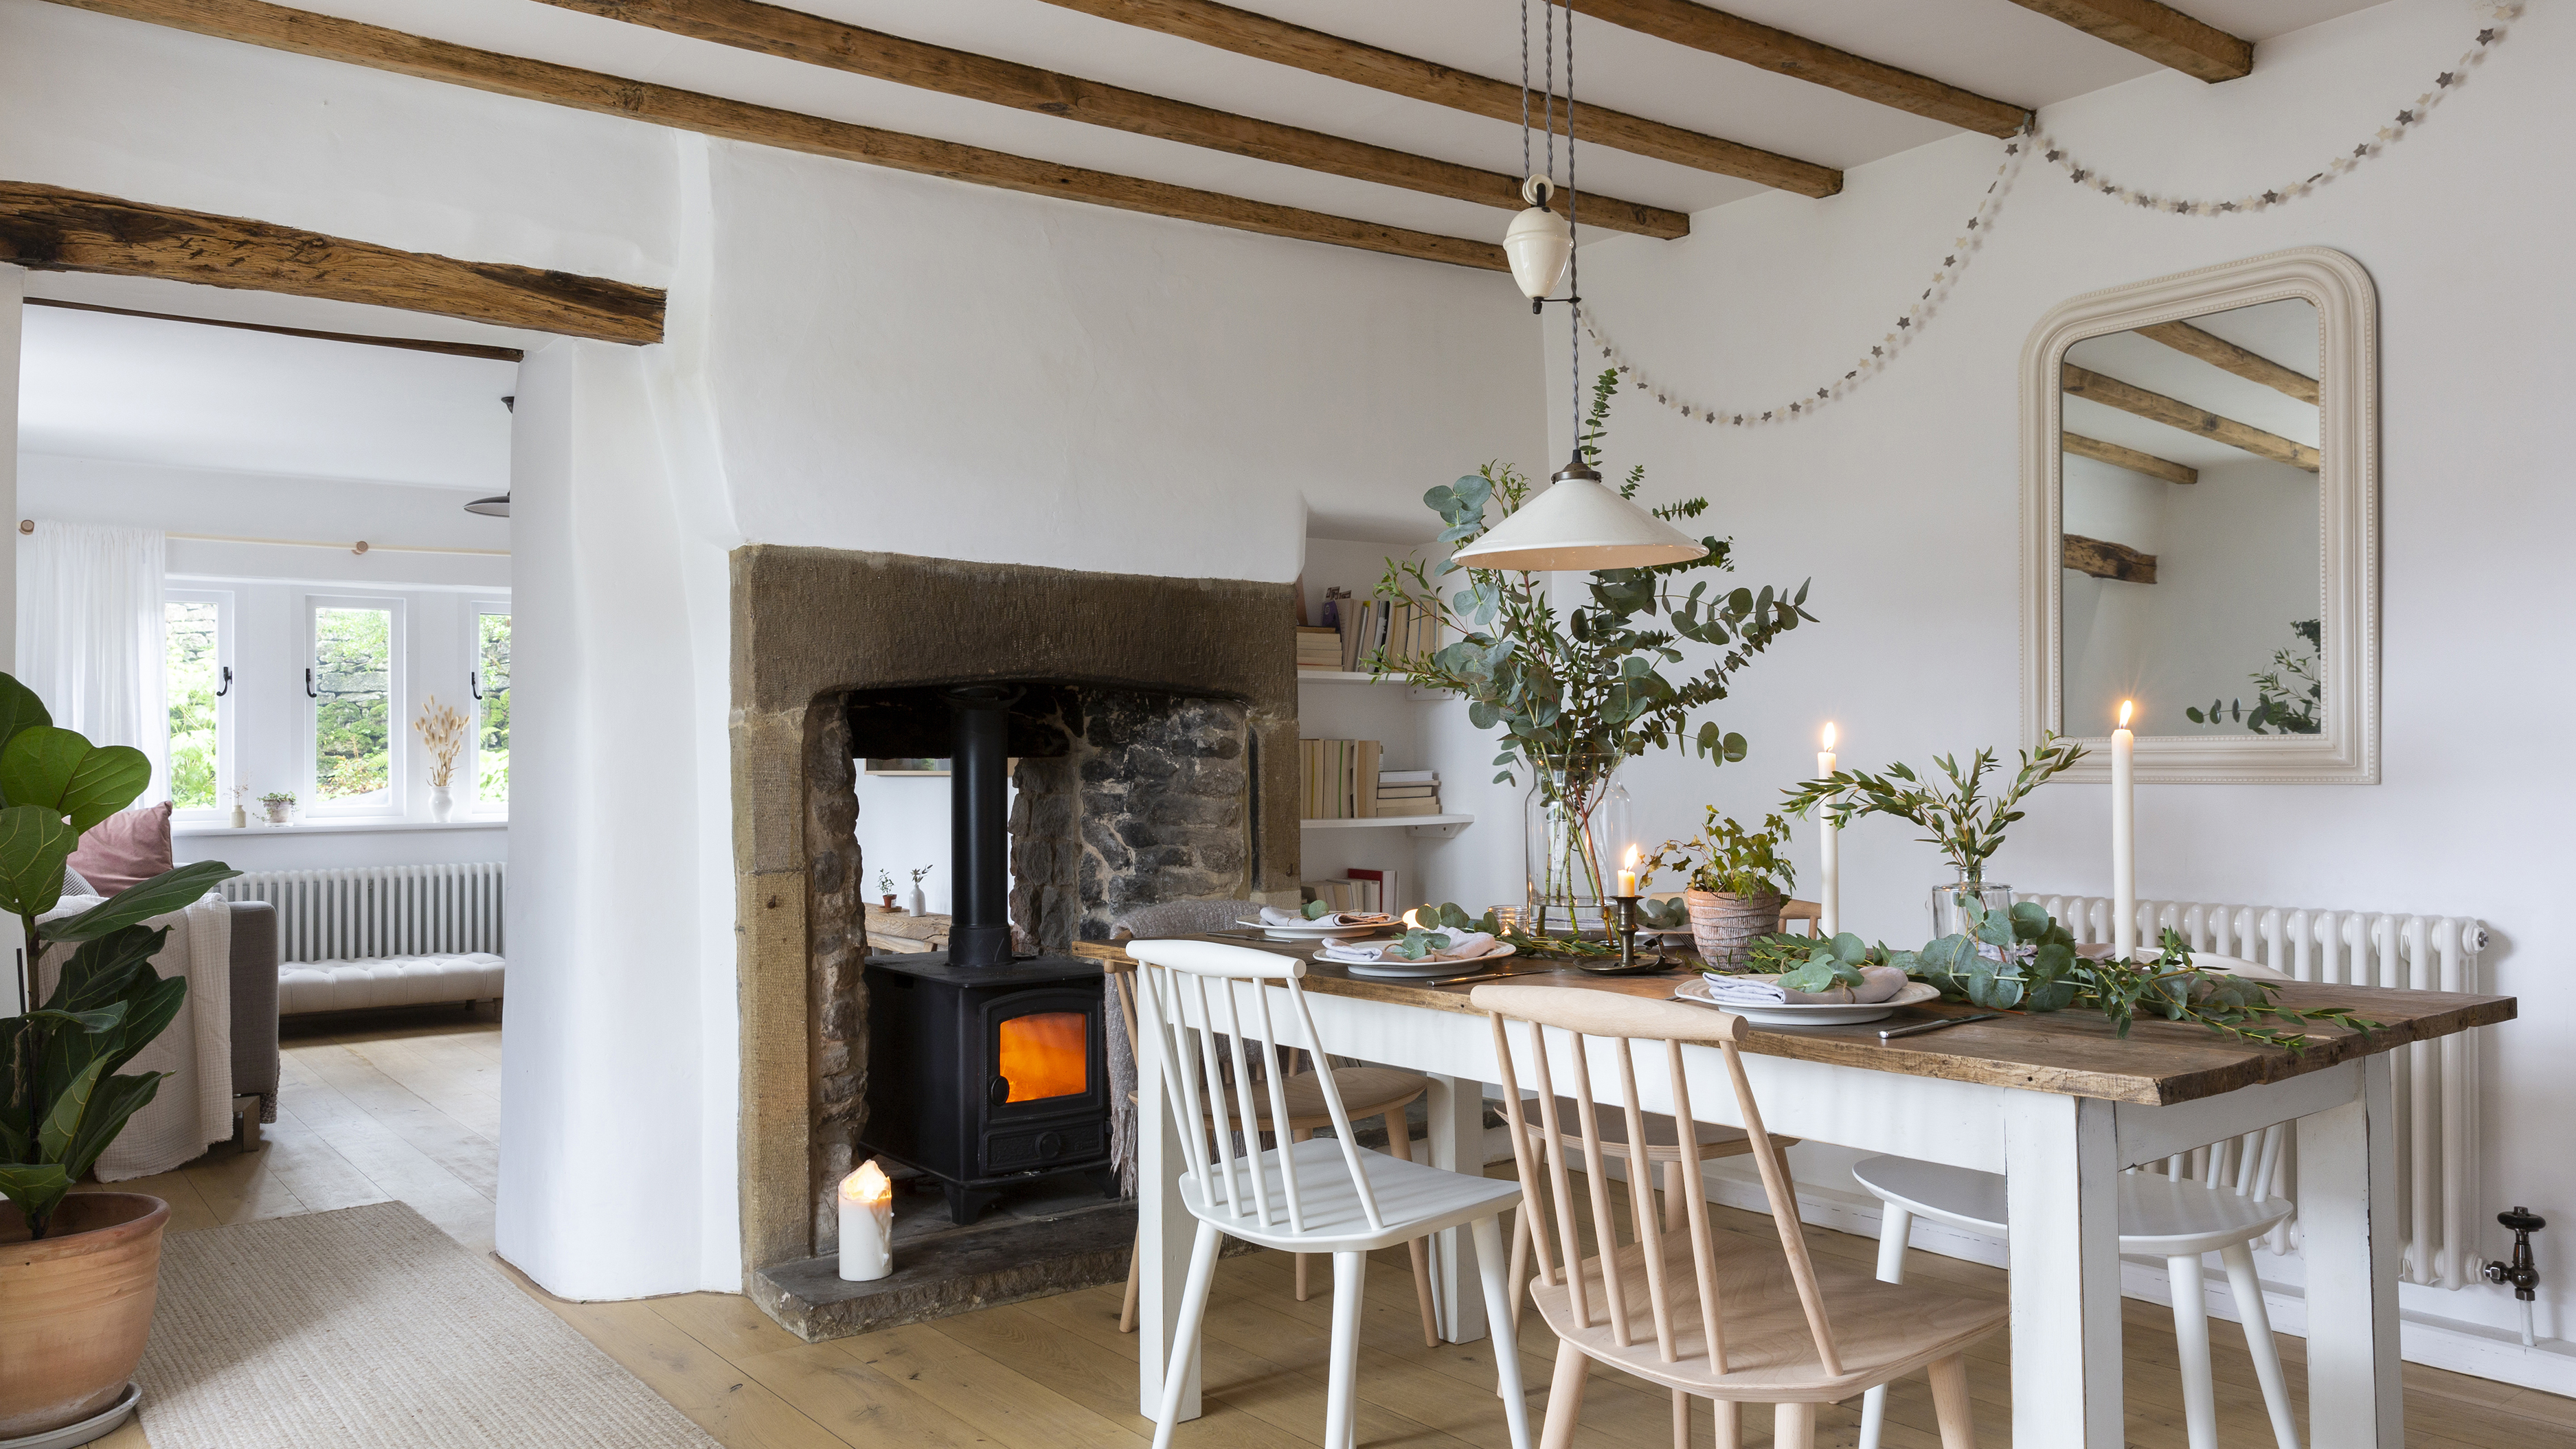 Real home a Victorian country cottage with simple Scandi style ...